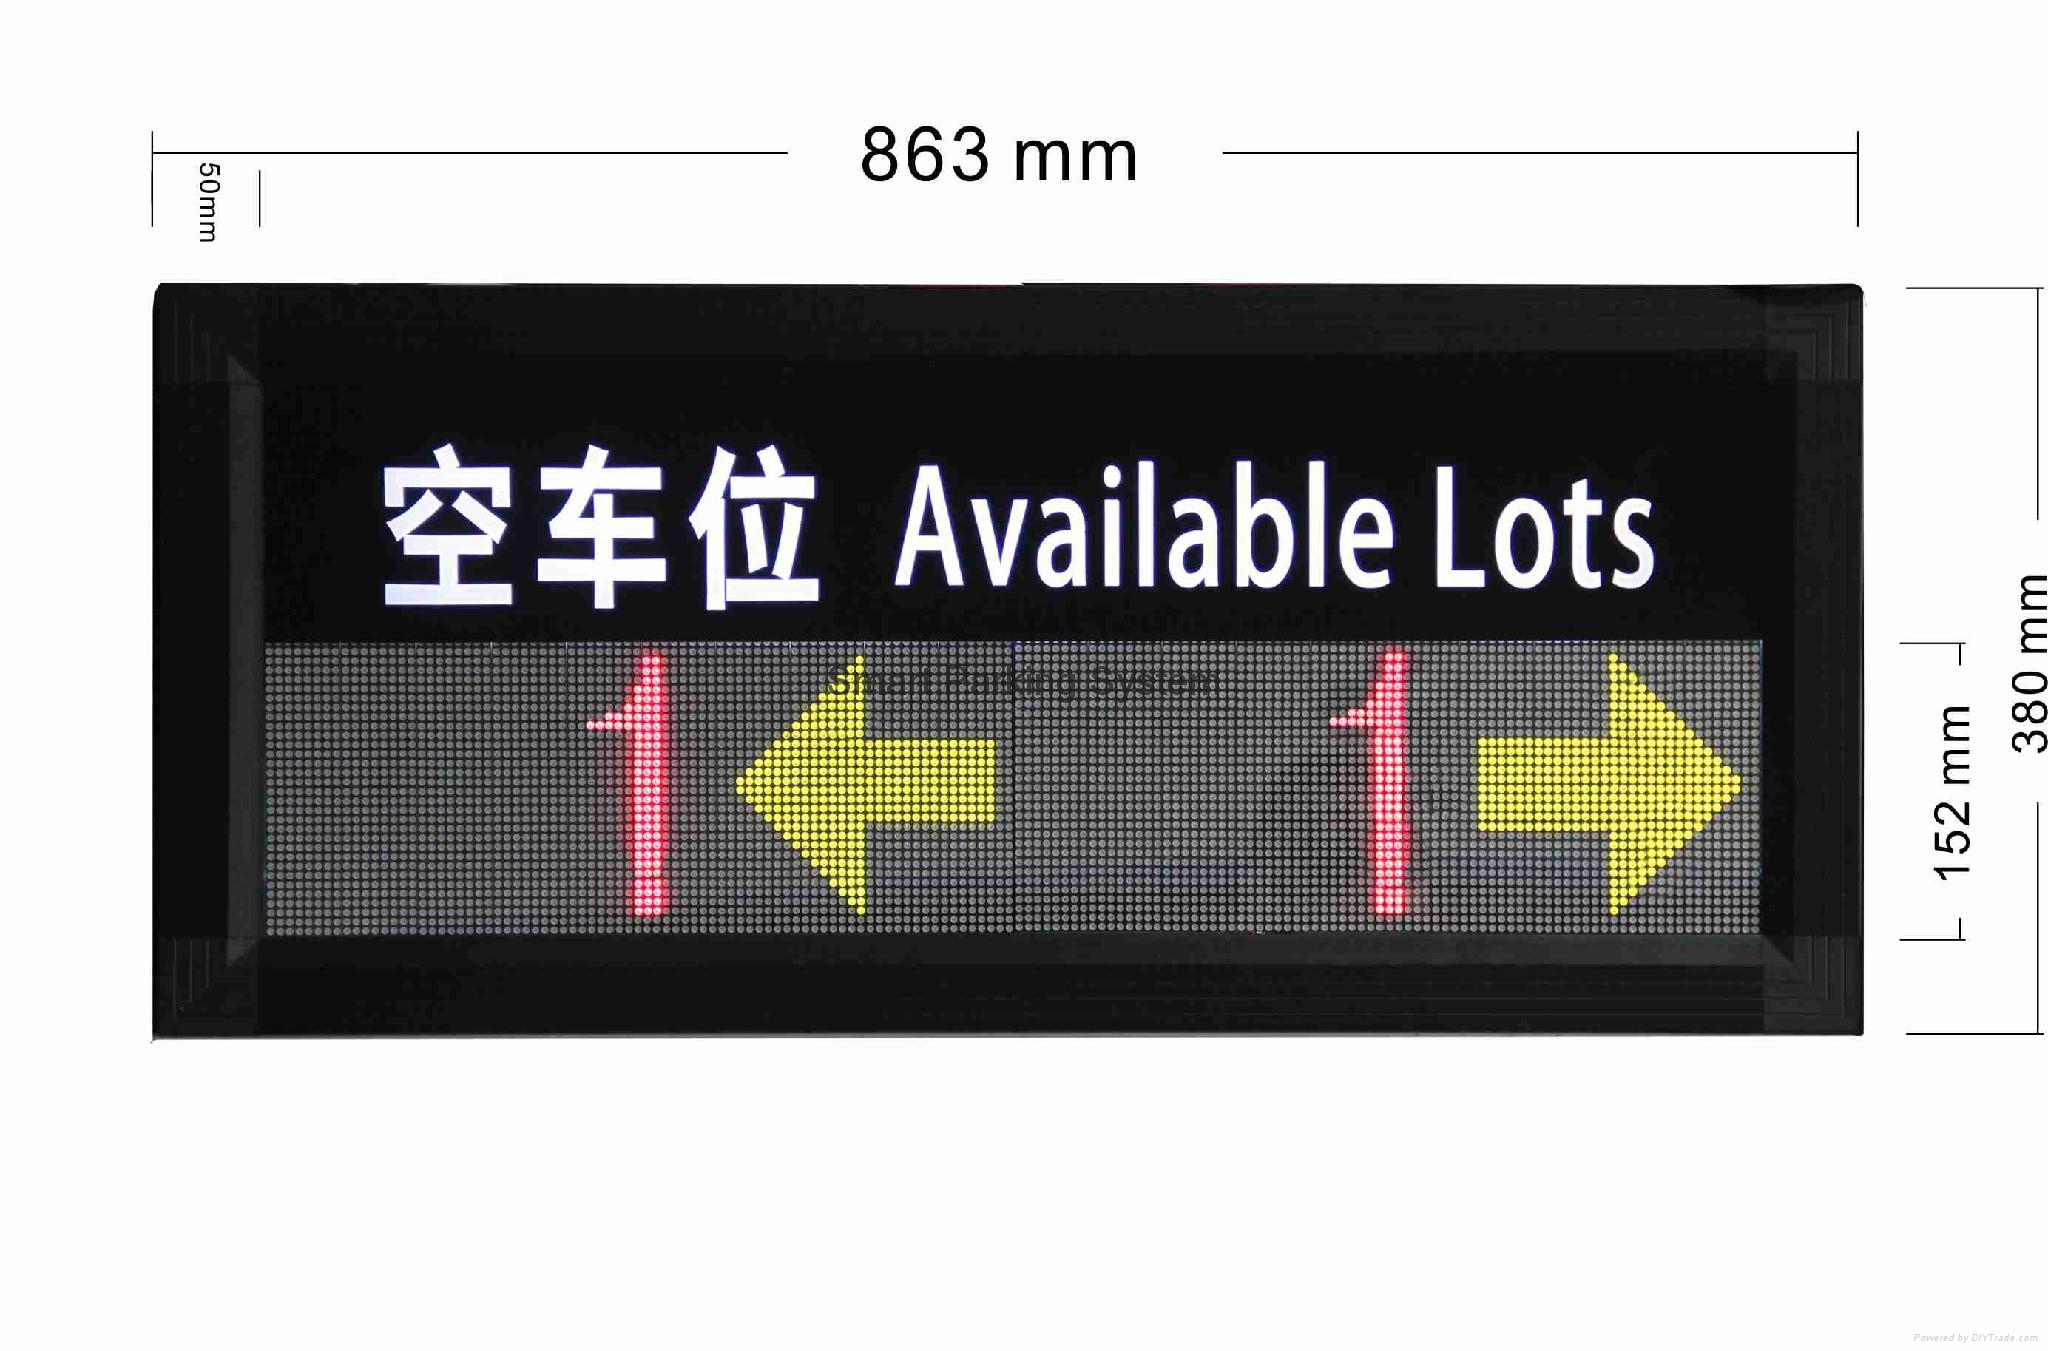 Available Lots Information Real-time Indoor Parking Guiding Led Display 2